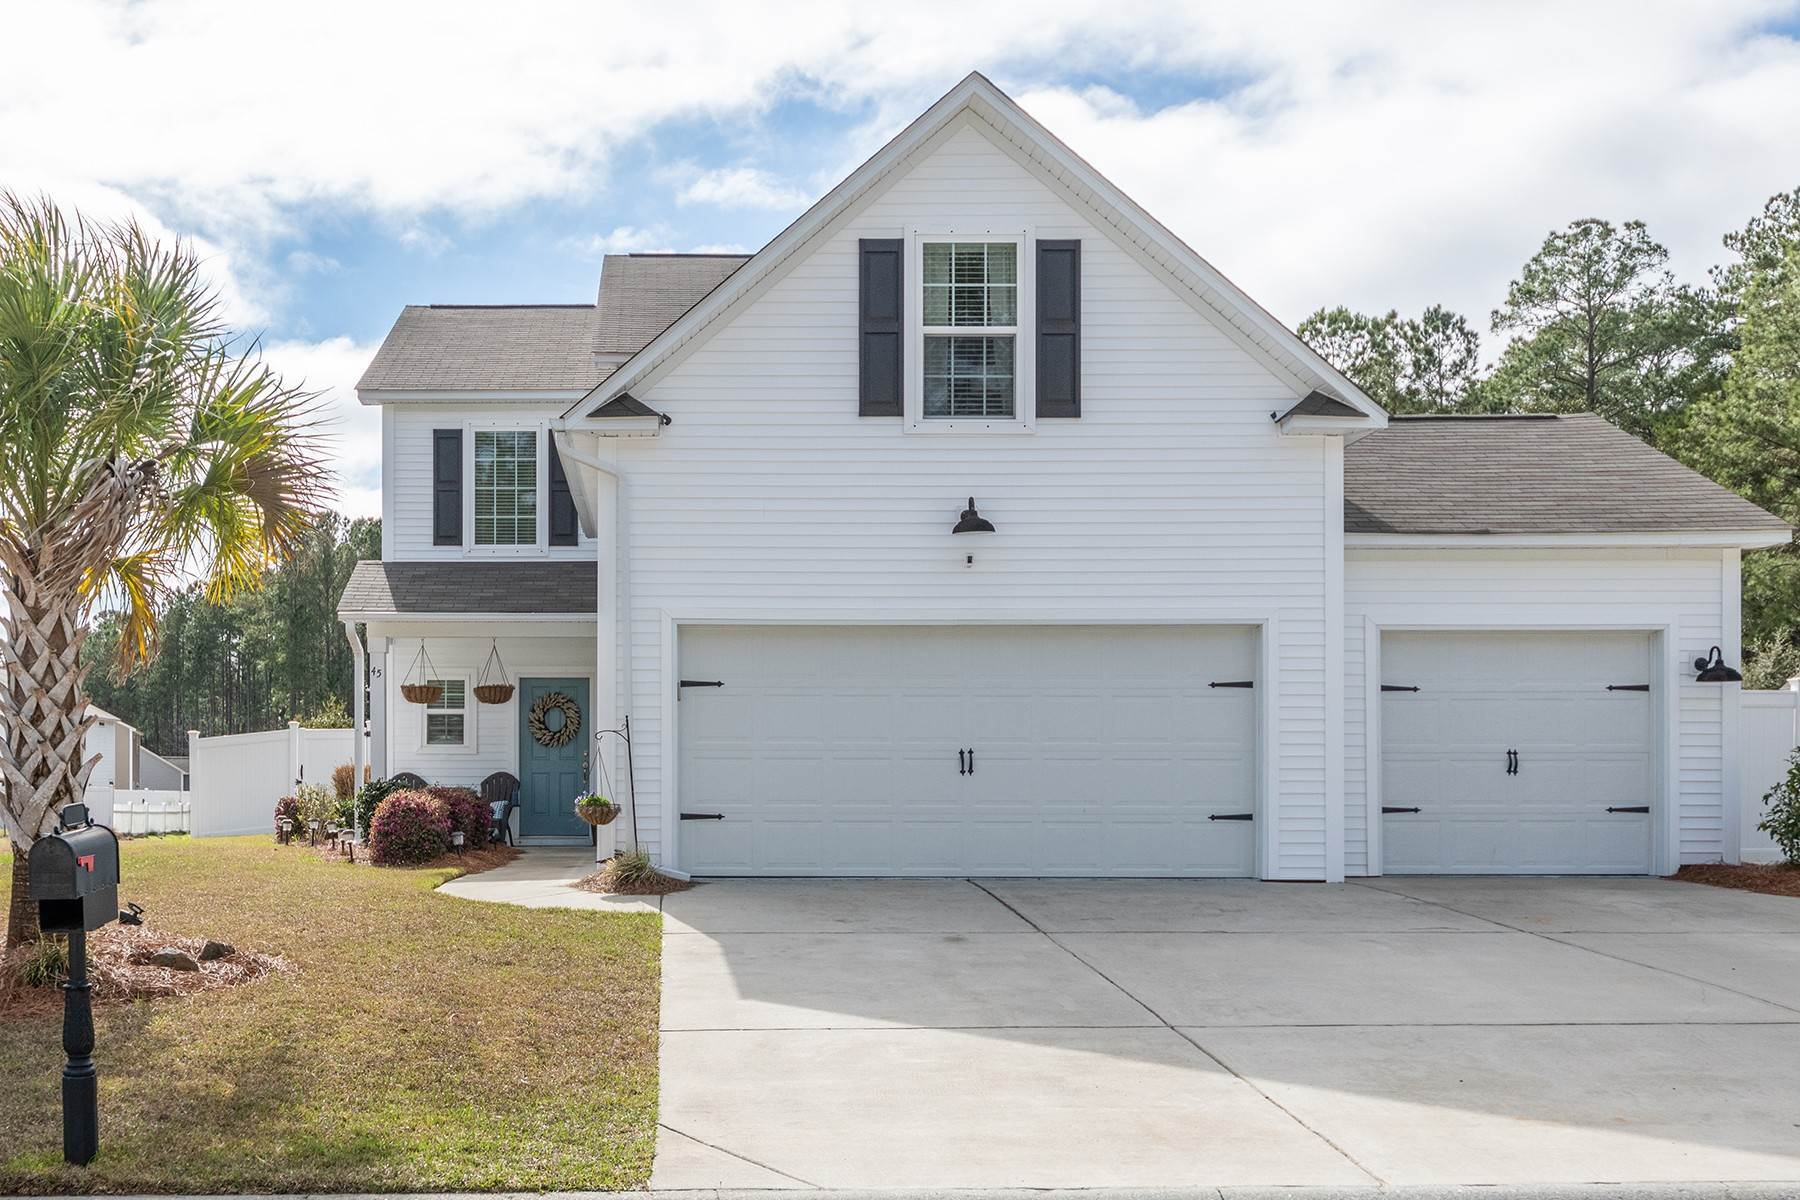 Property for Sale at 45 Swamp White Oak Drive 45 Swamp Oak Drive Bluffton, South Carolina 29910 United States